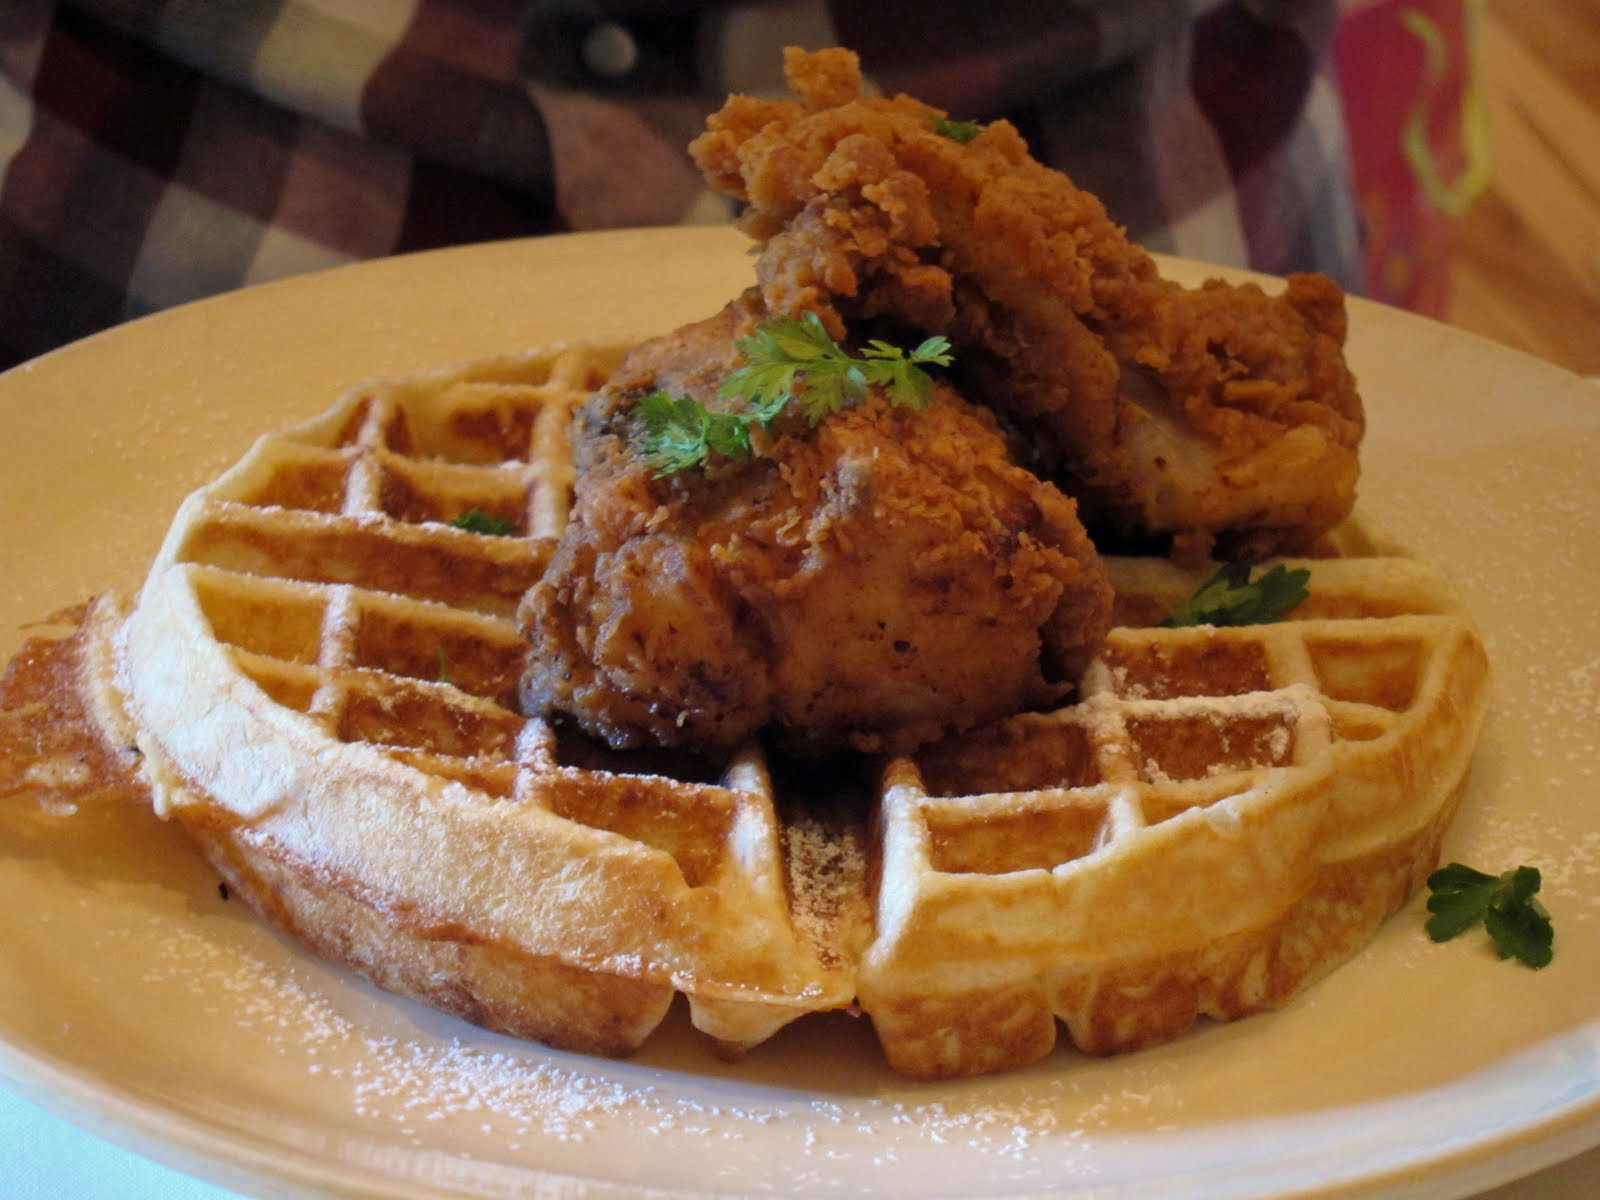 Chicago Chicken And Waffles  Near North Chicago Staycation Guide Chicken and Waffles